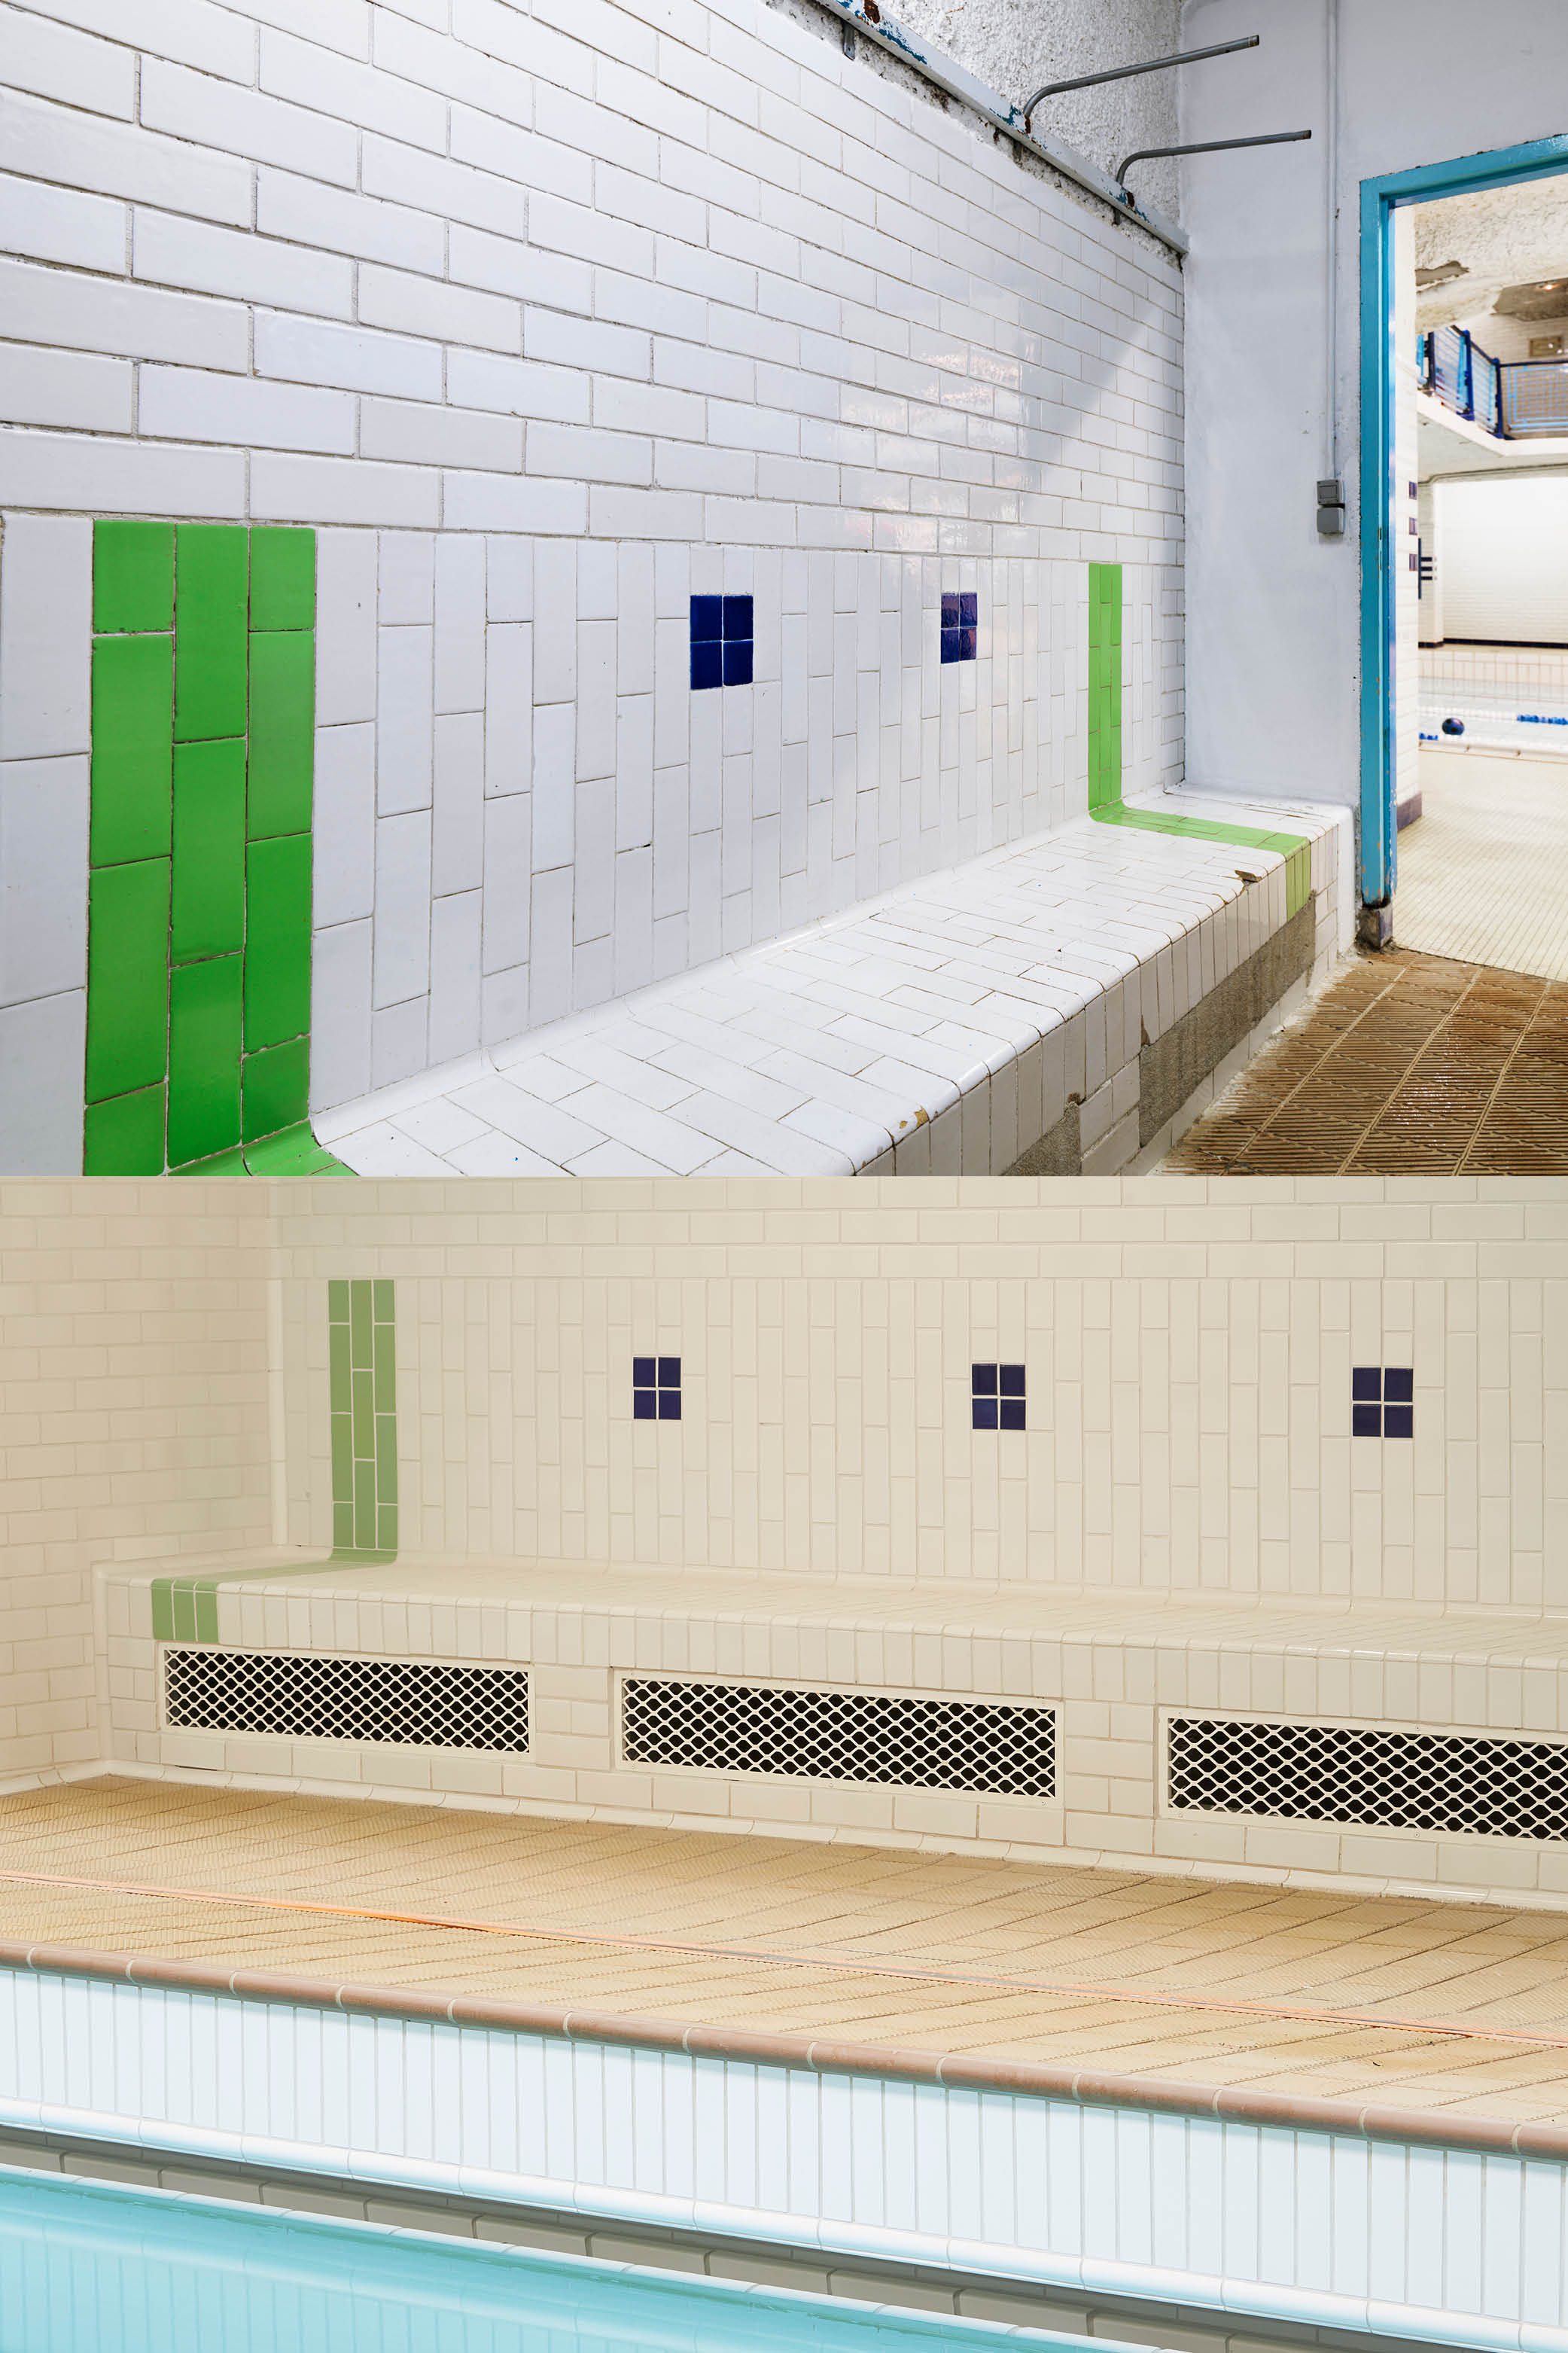 The Amiraux swimming pool before and after the renovation campaign © Cyrille Weiner/Antoine Mercusot}